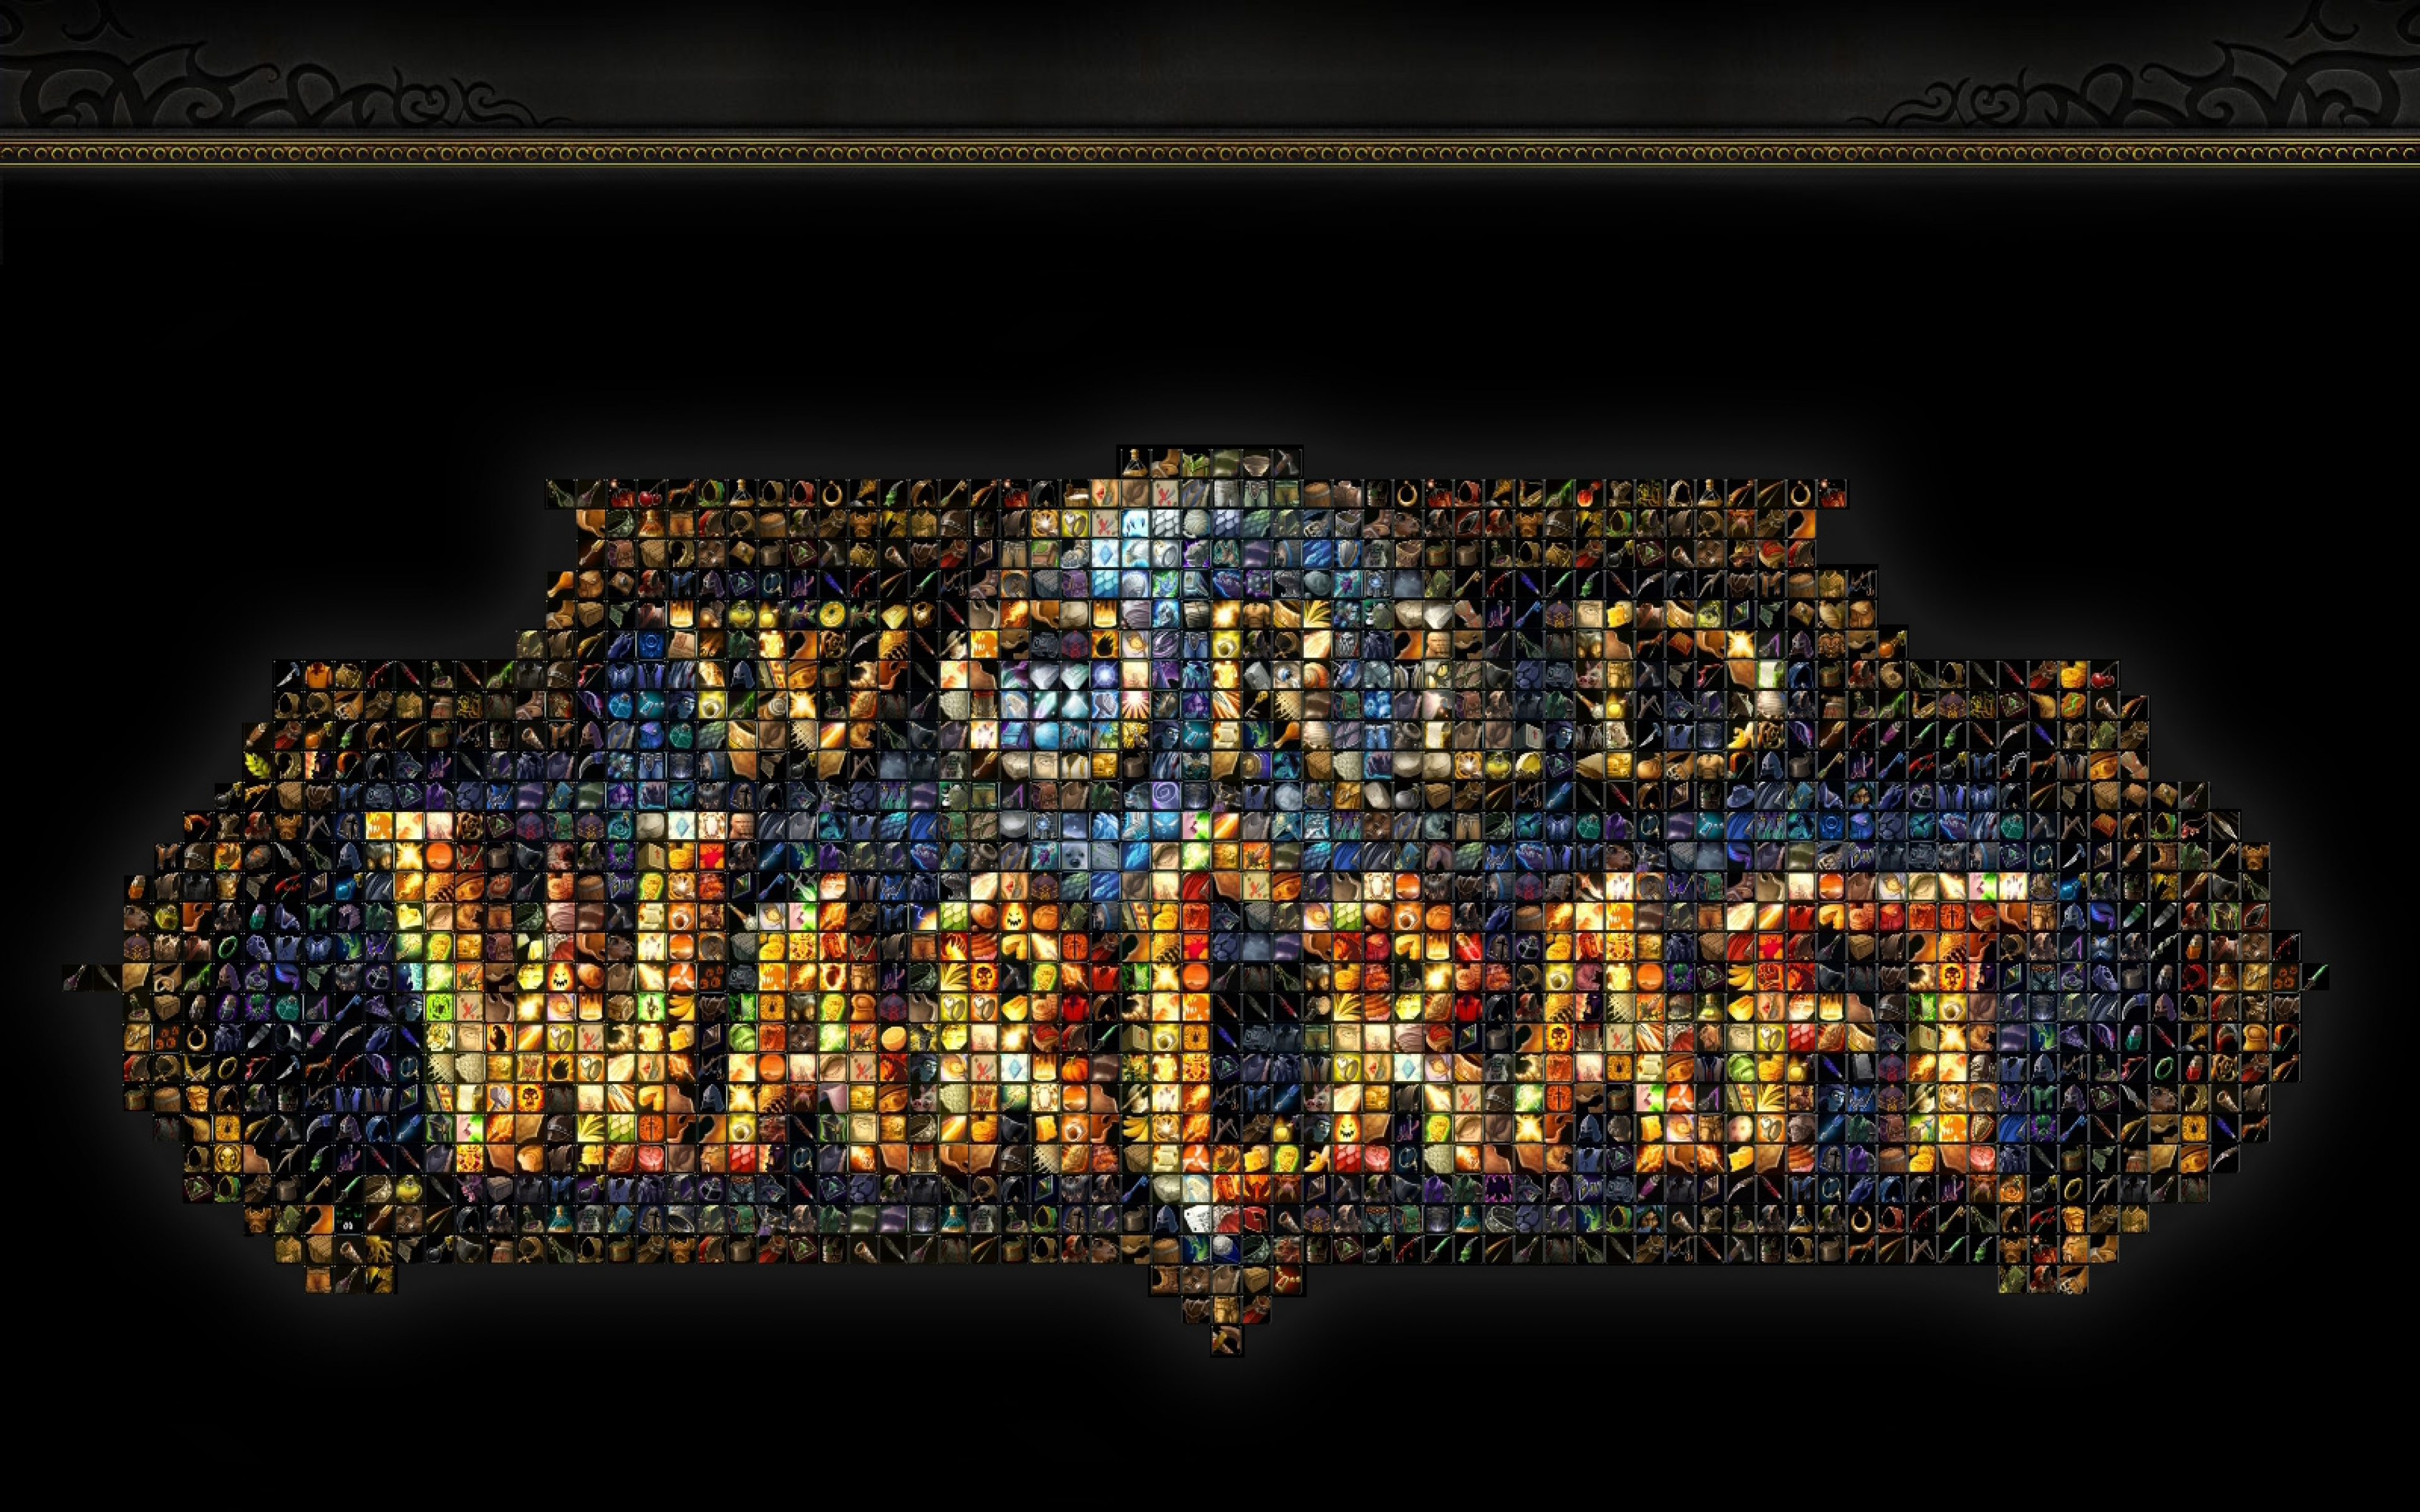 Download Wallpaper 3840x2400 world of warcraft shots photos name 3840x2400